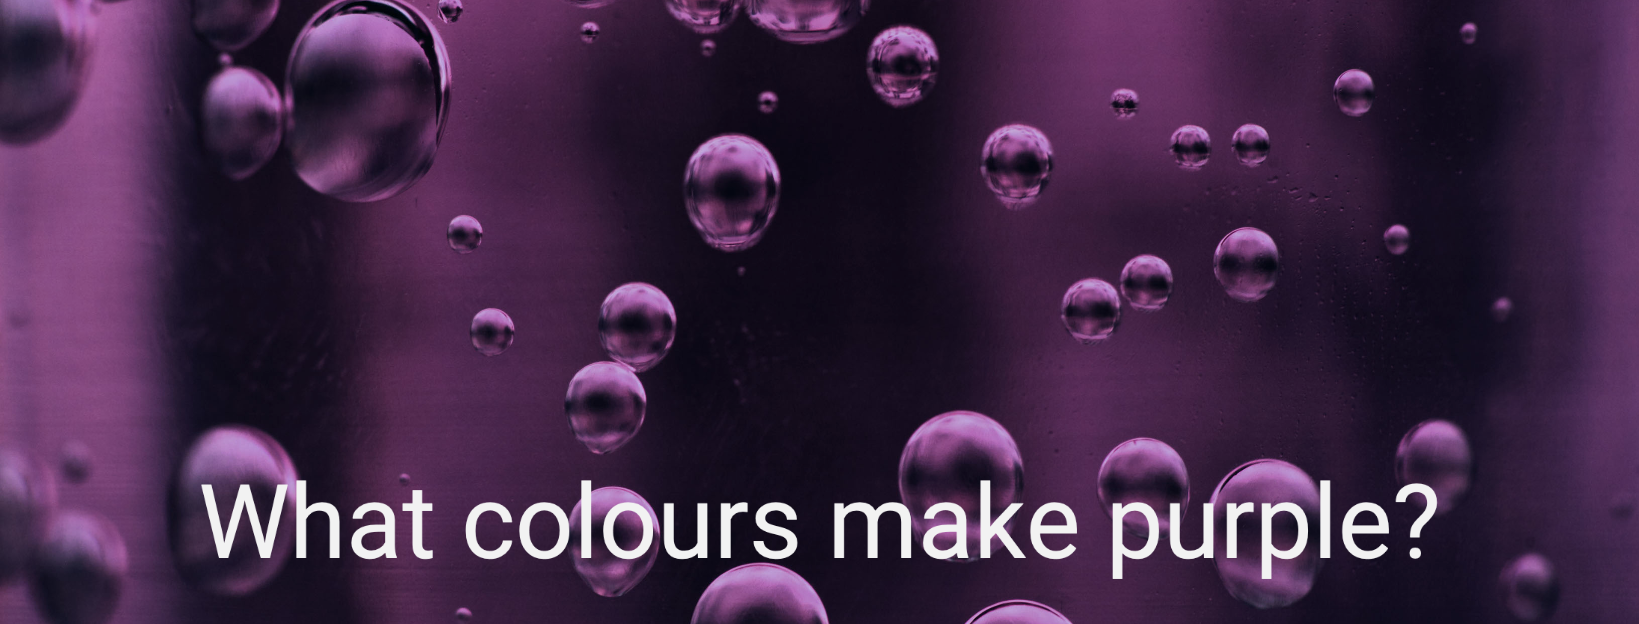 What colours make purple